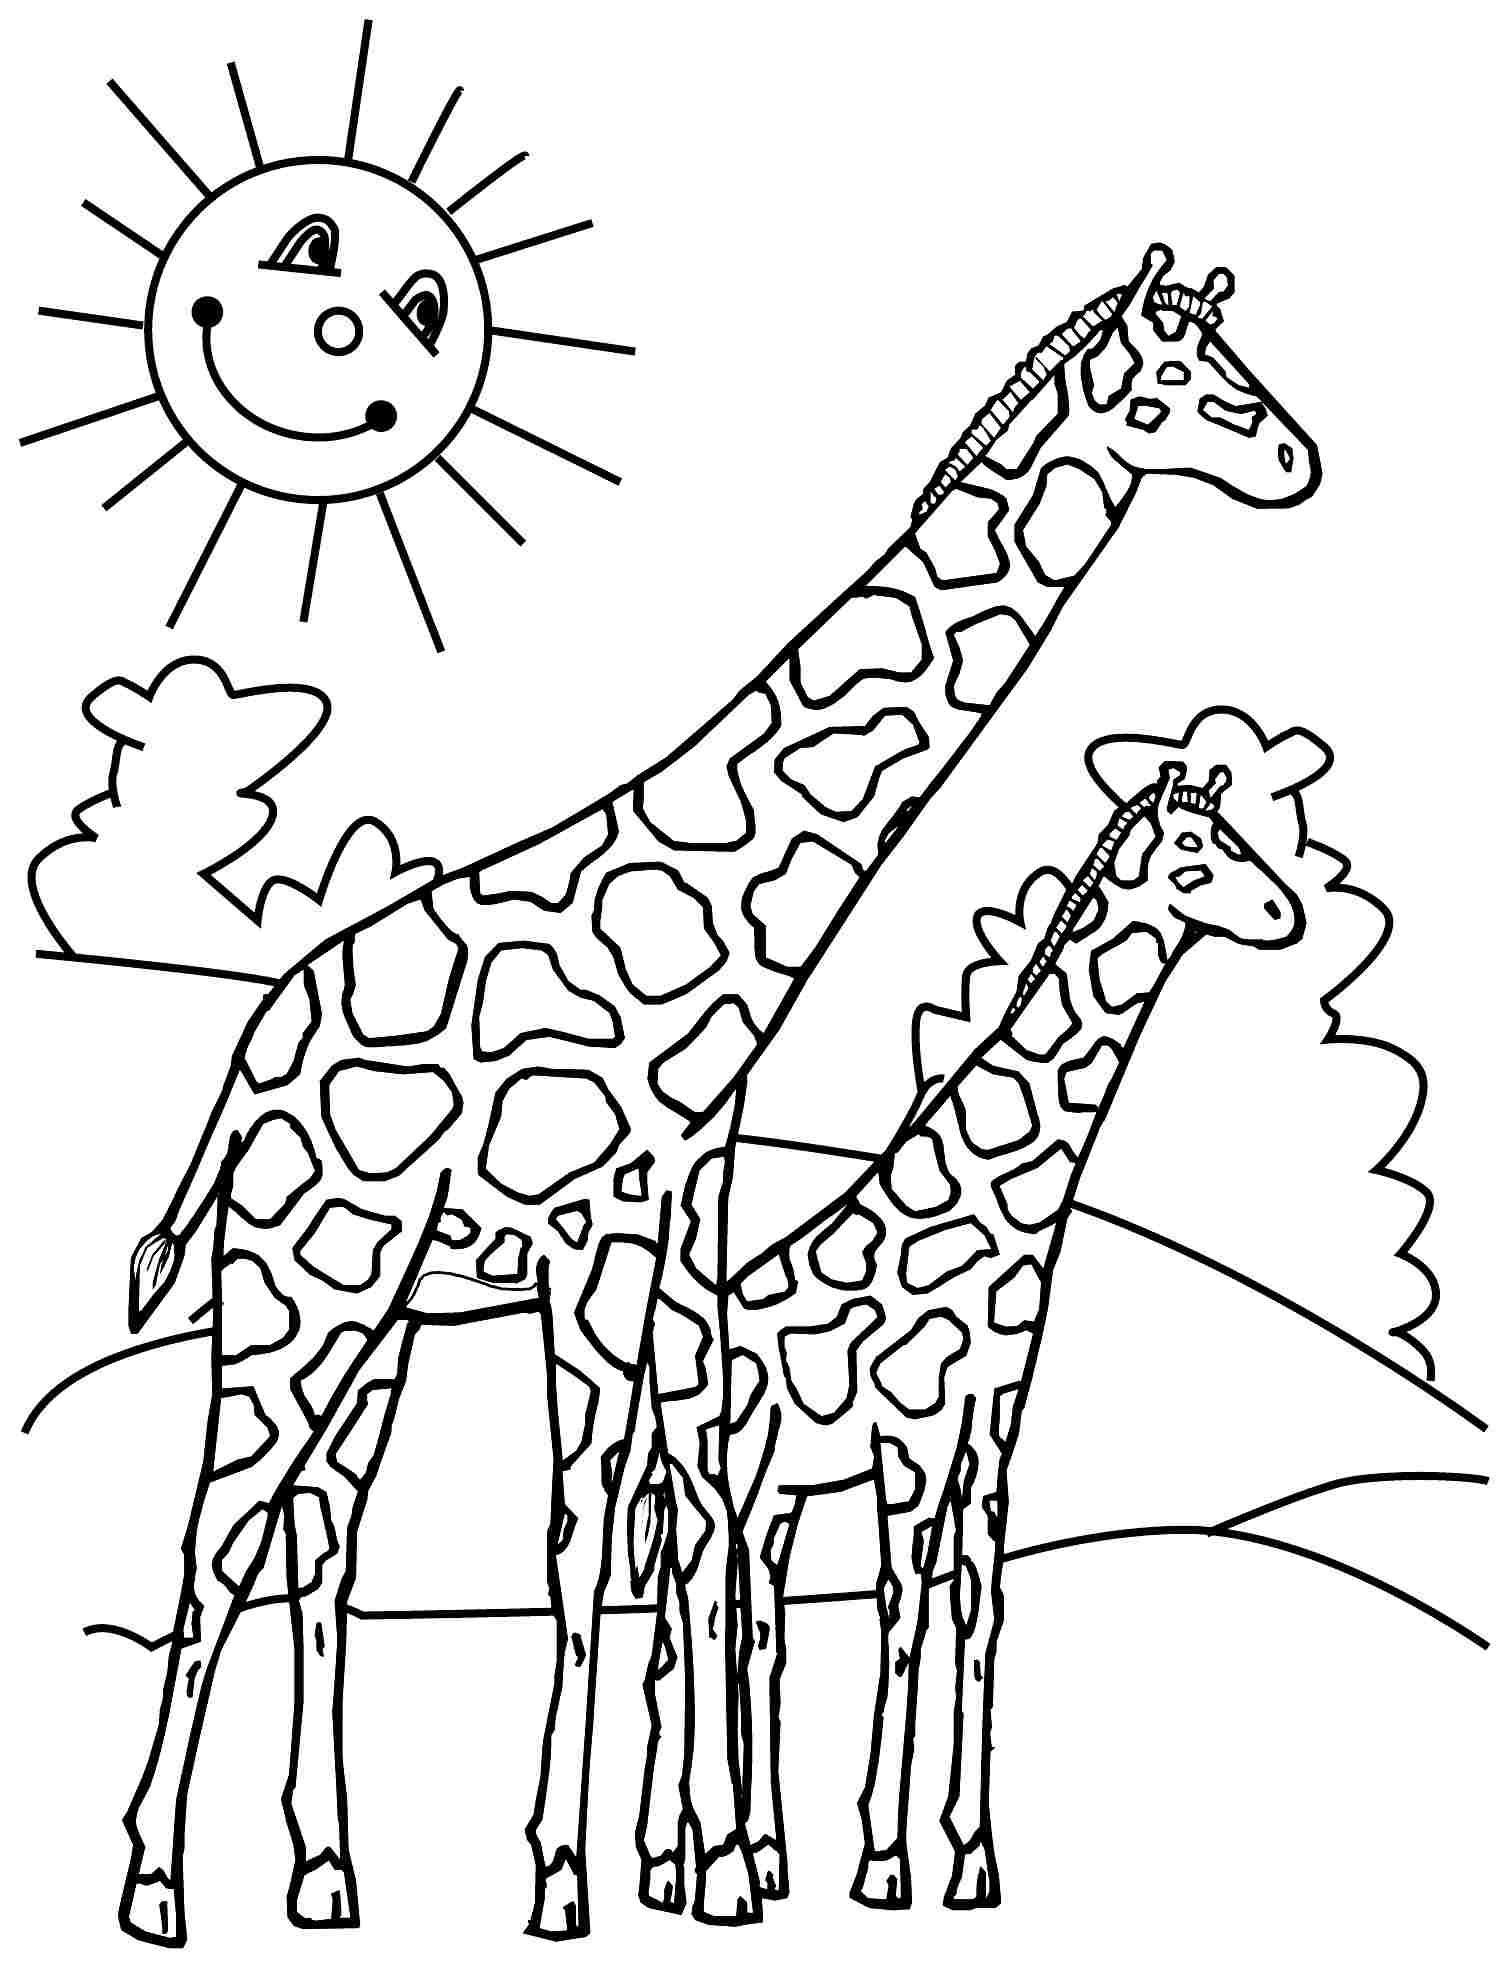 coloring pictures printable giraffes coloring pages to download and print for free pictures coloring printable